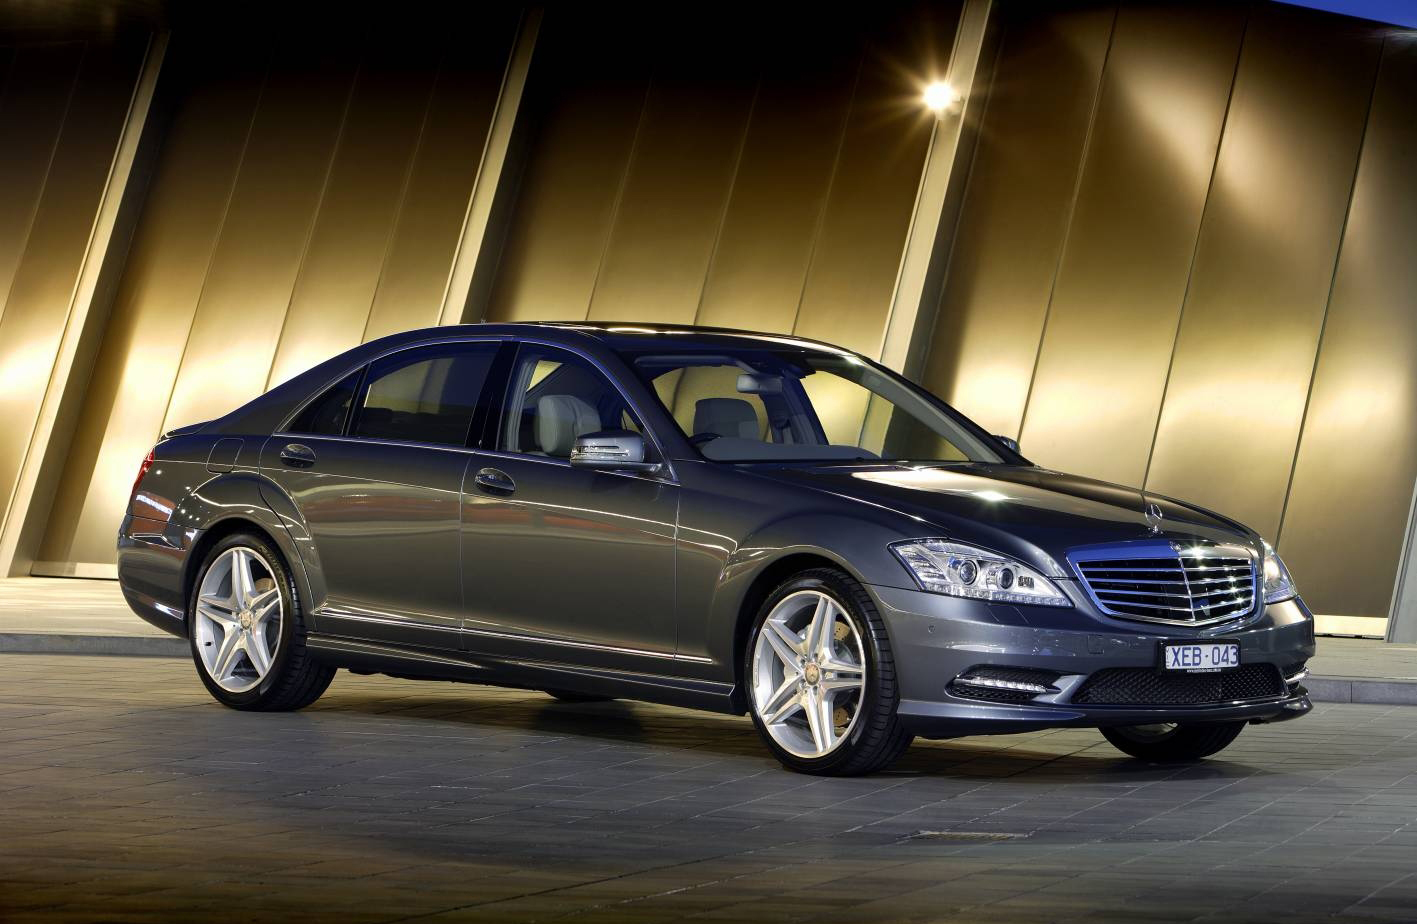 Mercedes Benz S350 Cdi Will Be Put On Sale In Us